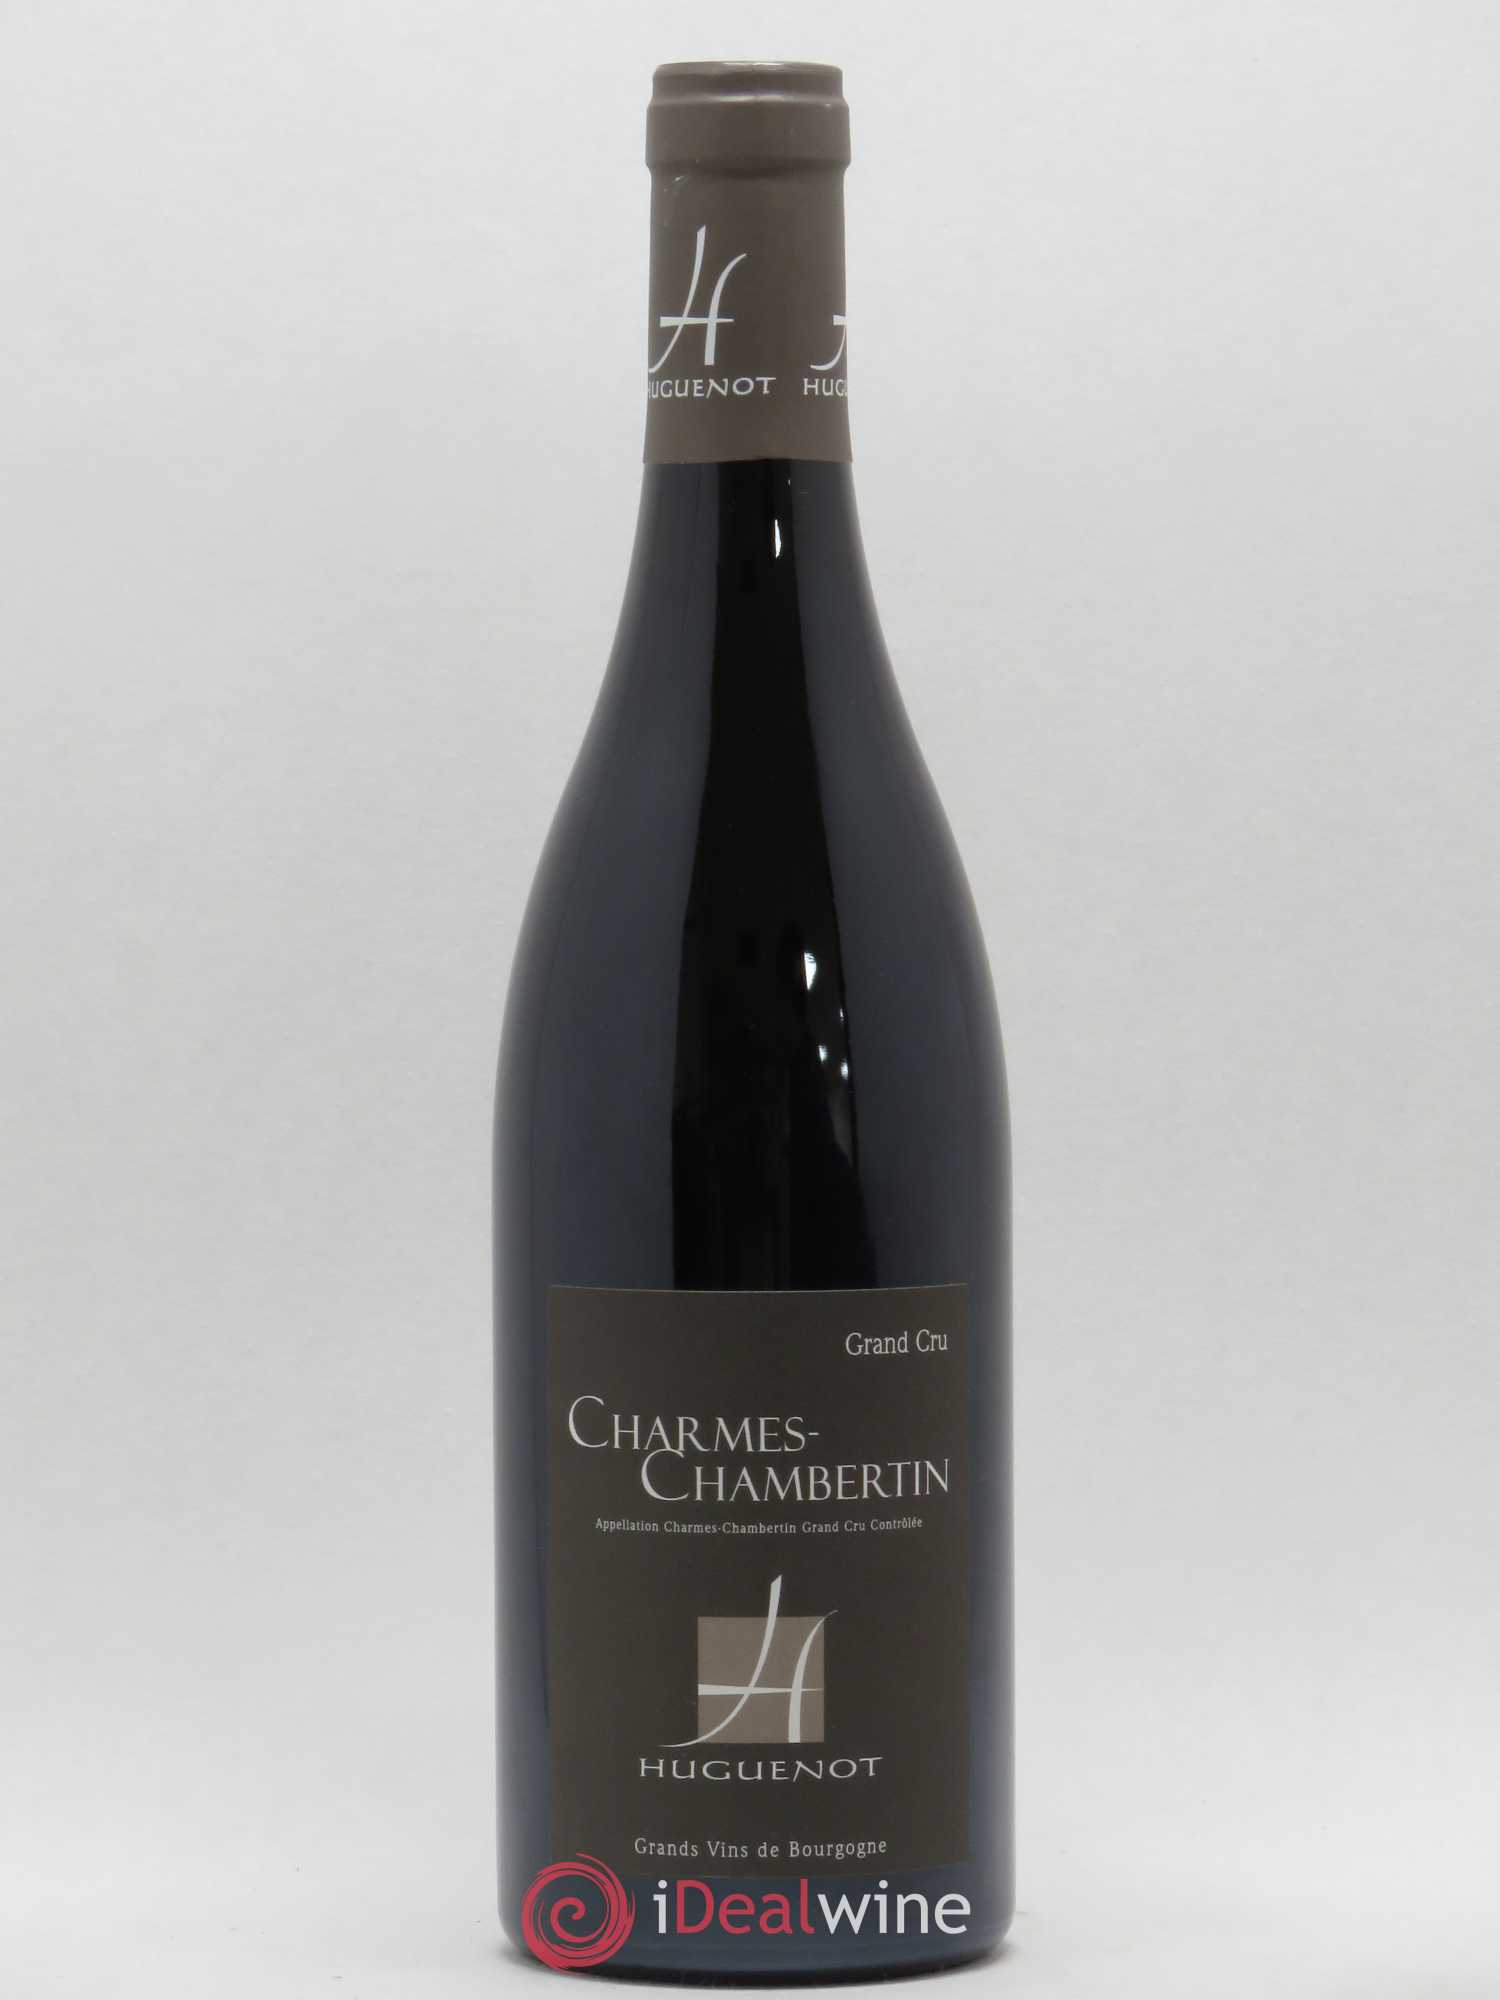 Charmes-Chambertin Grand Cru Huguenot 2016 - Lot of 1 Bottle